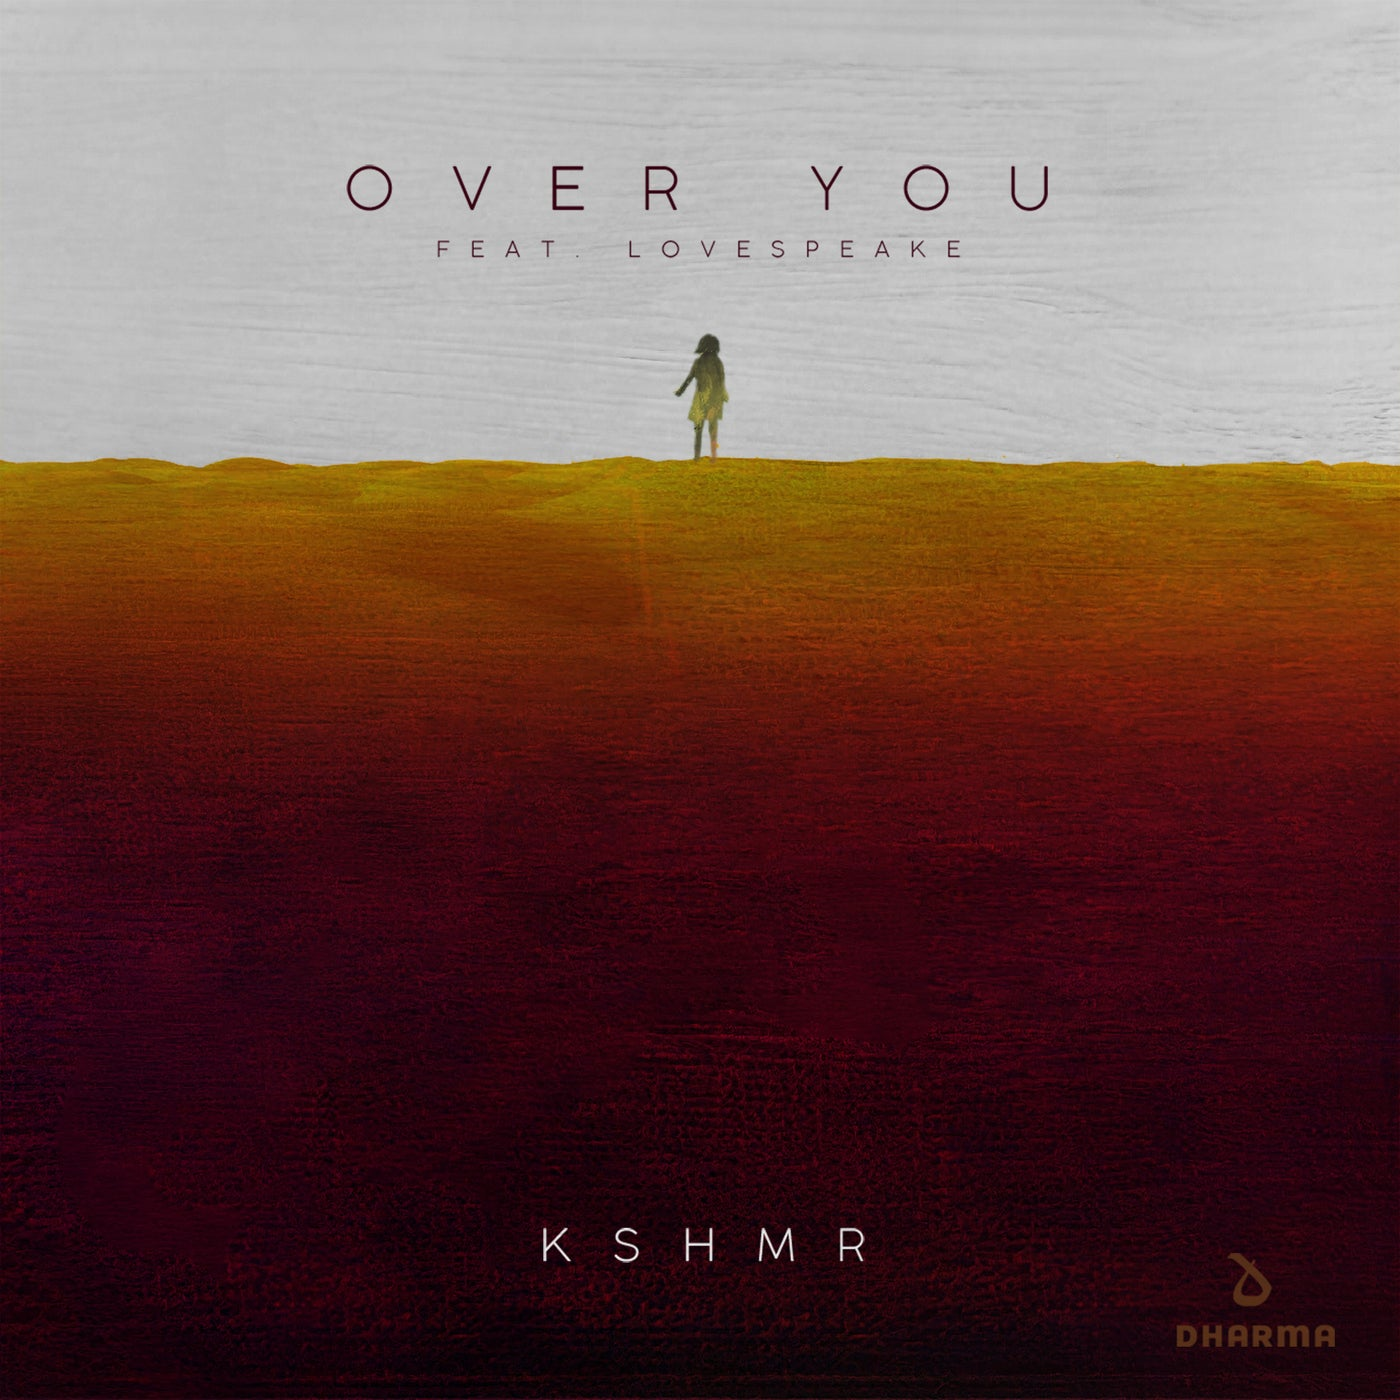 Over You (feat. Lovespeake) (Extended Mix)